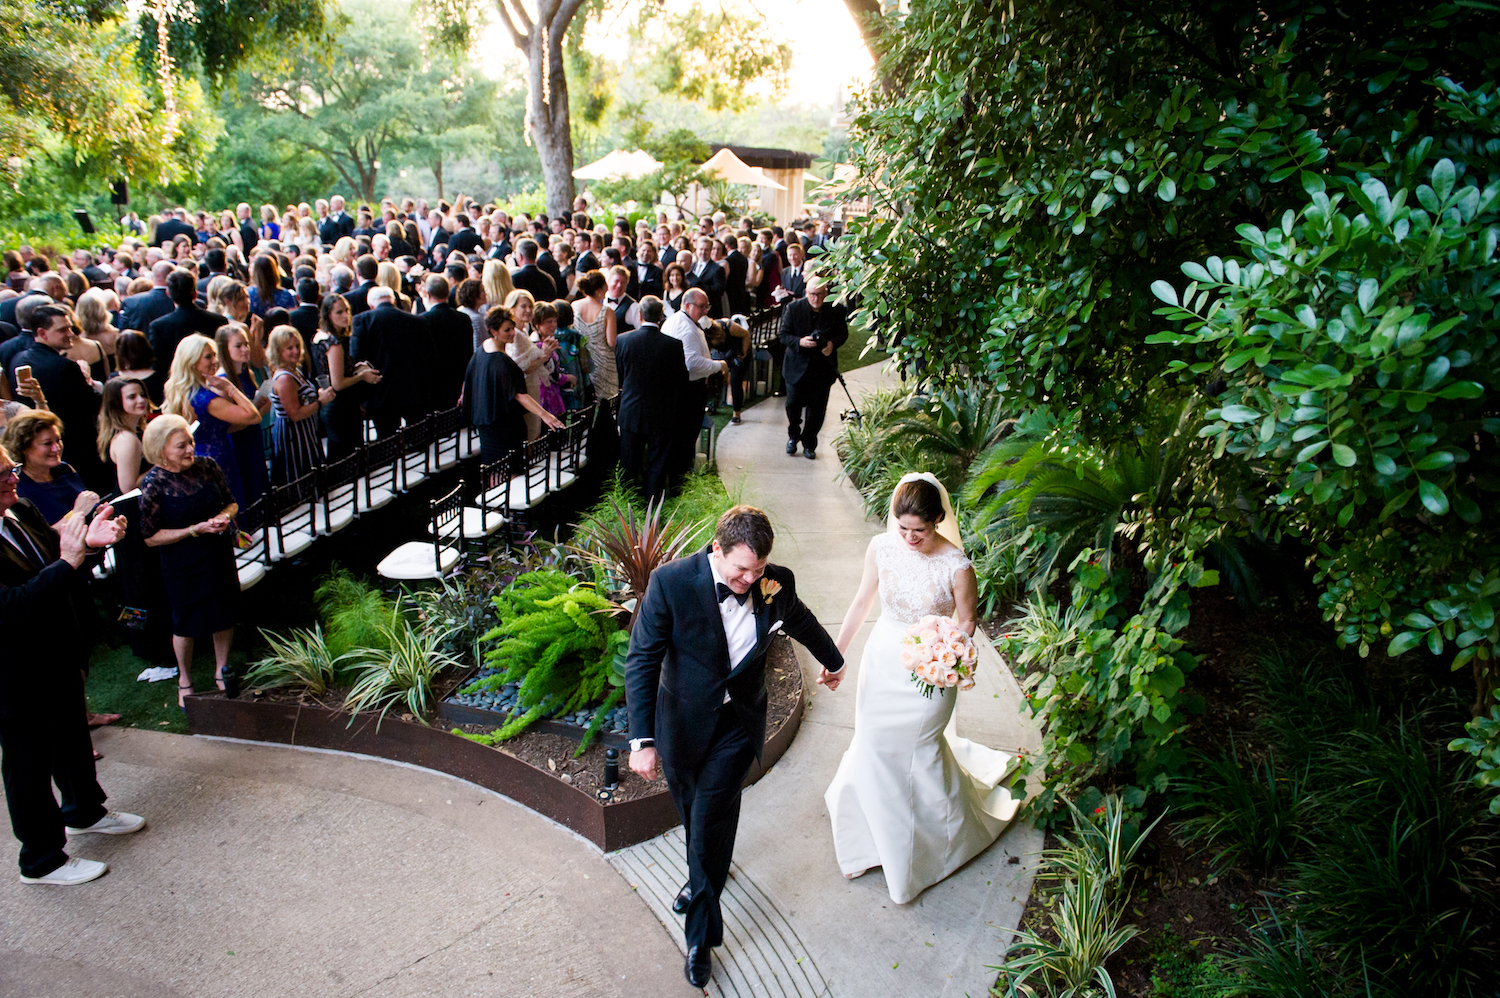 four-season-austin-jewish-wedding-coryryan-photography-14